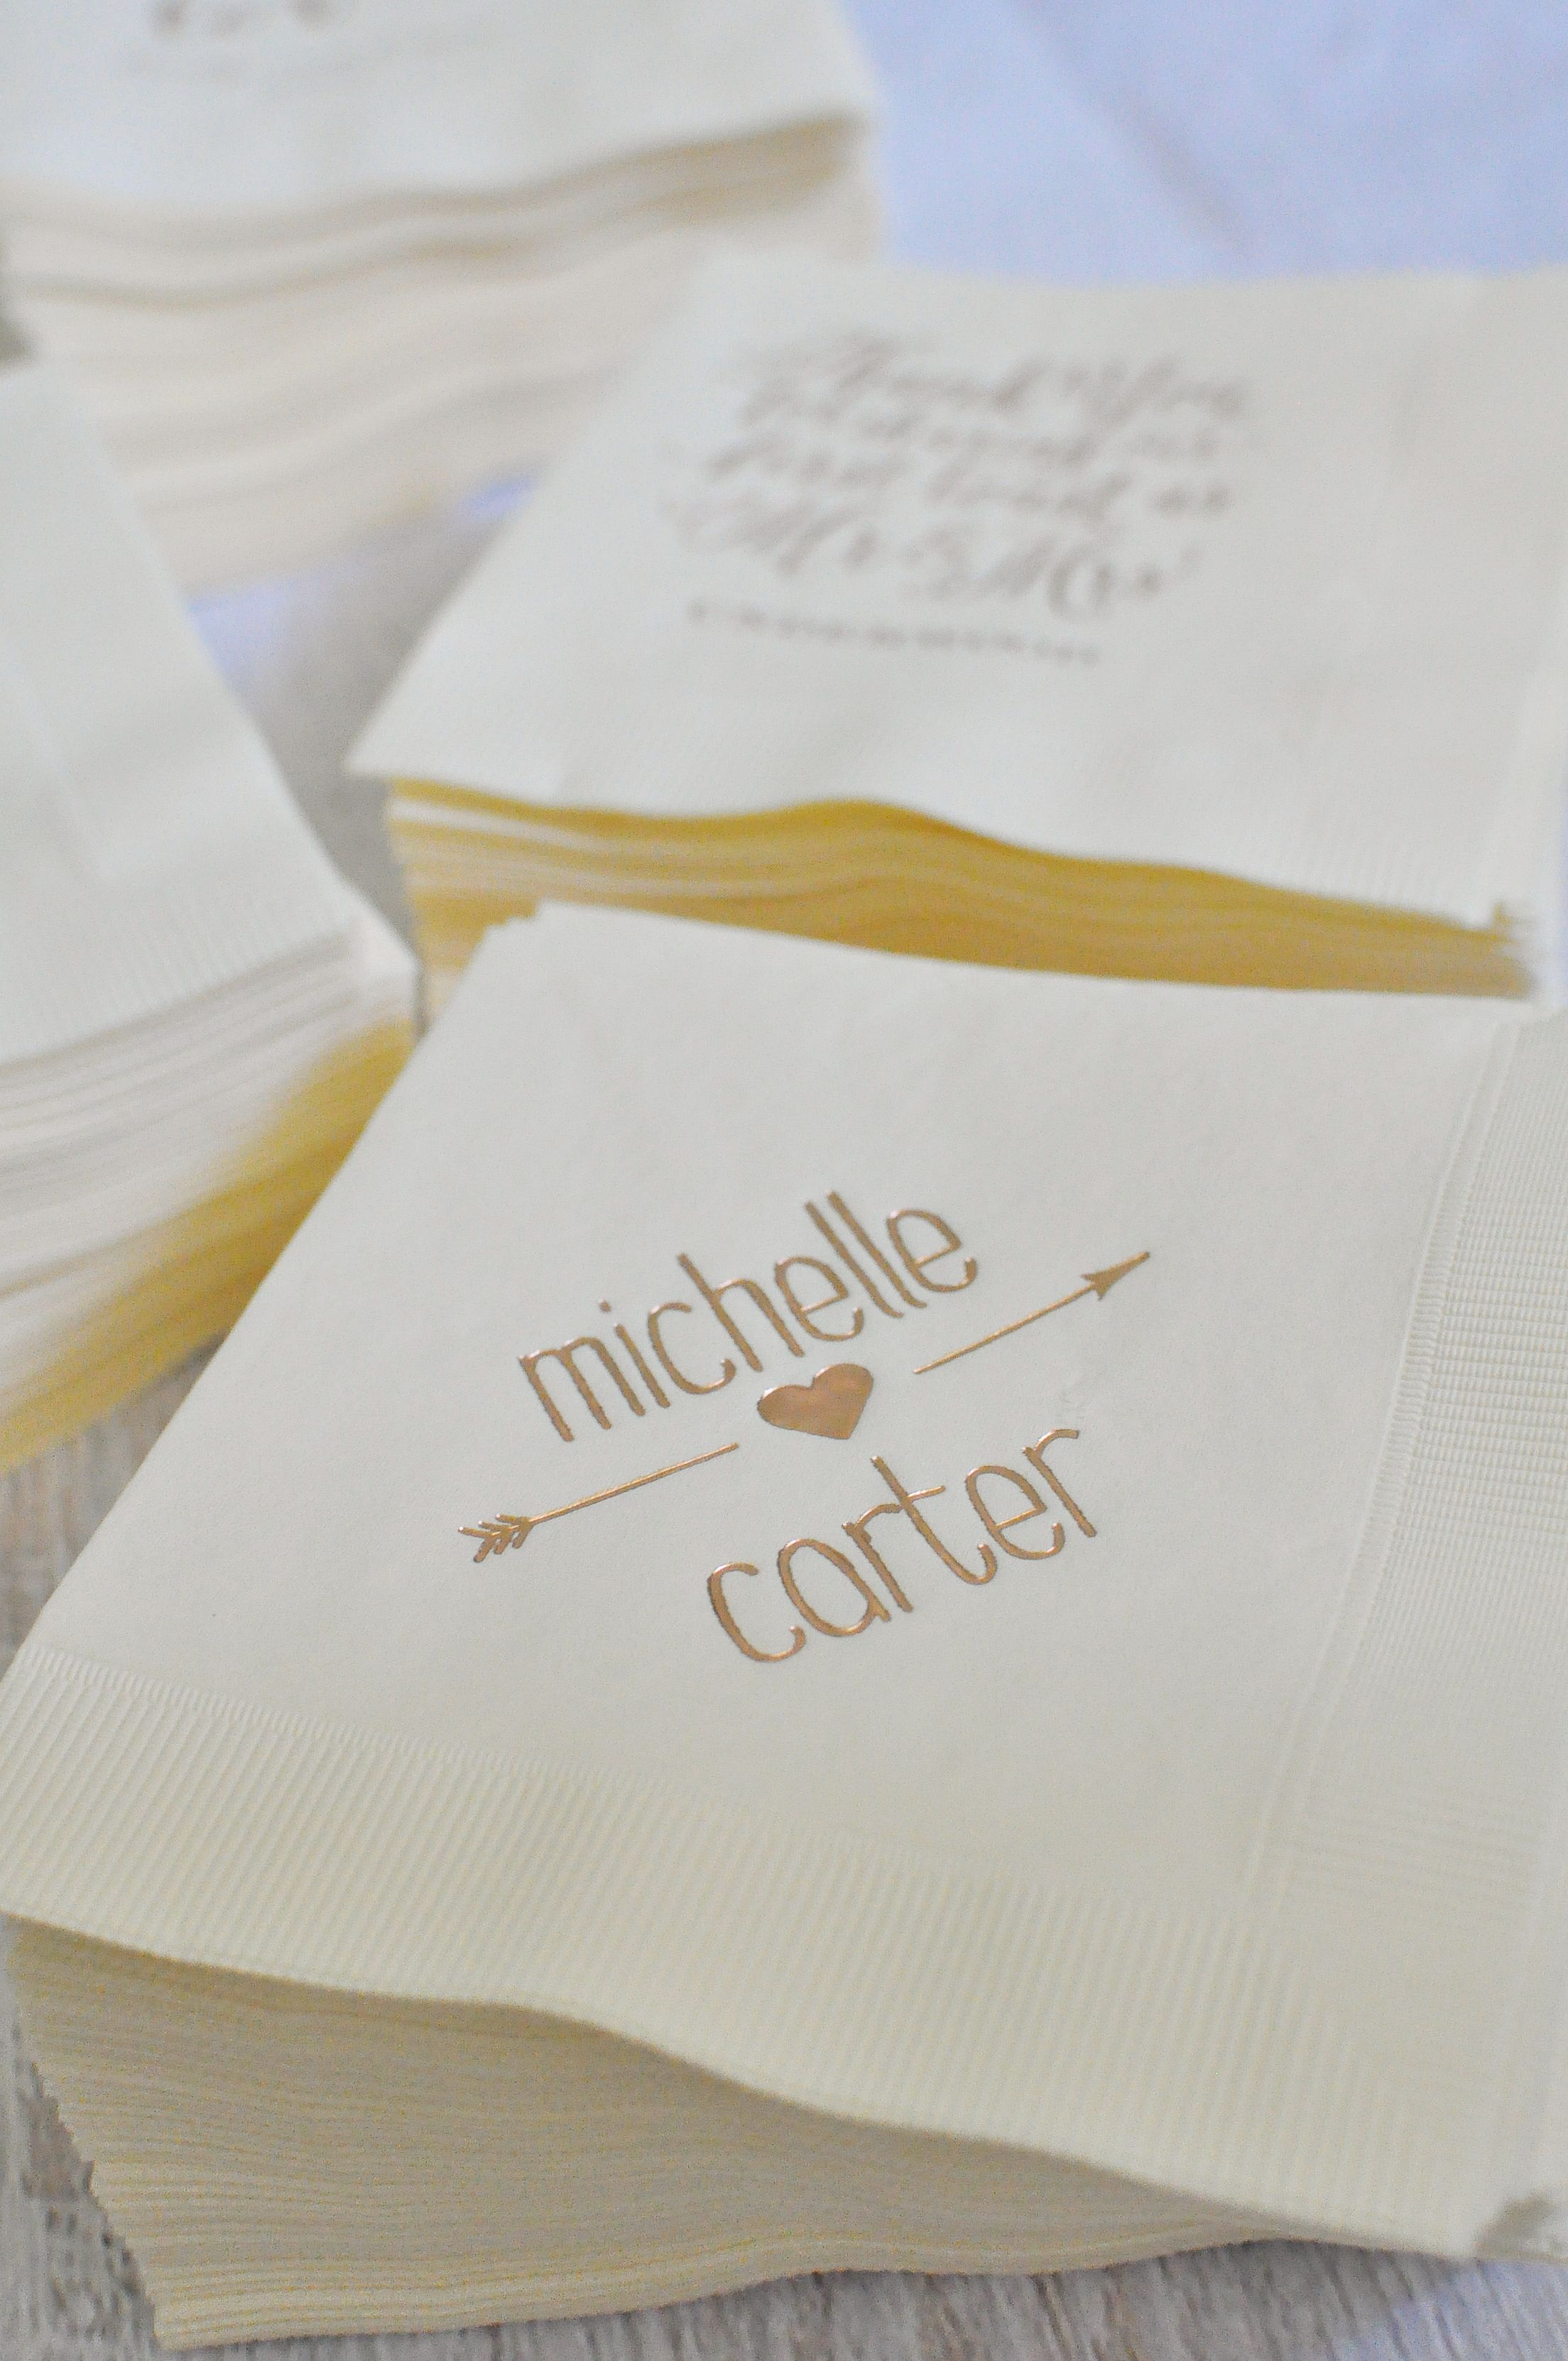 Personalized Napkins We Love Them Because A They Re Totally Affordable B Come In Million Color Combos C Three Words Rose